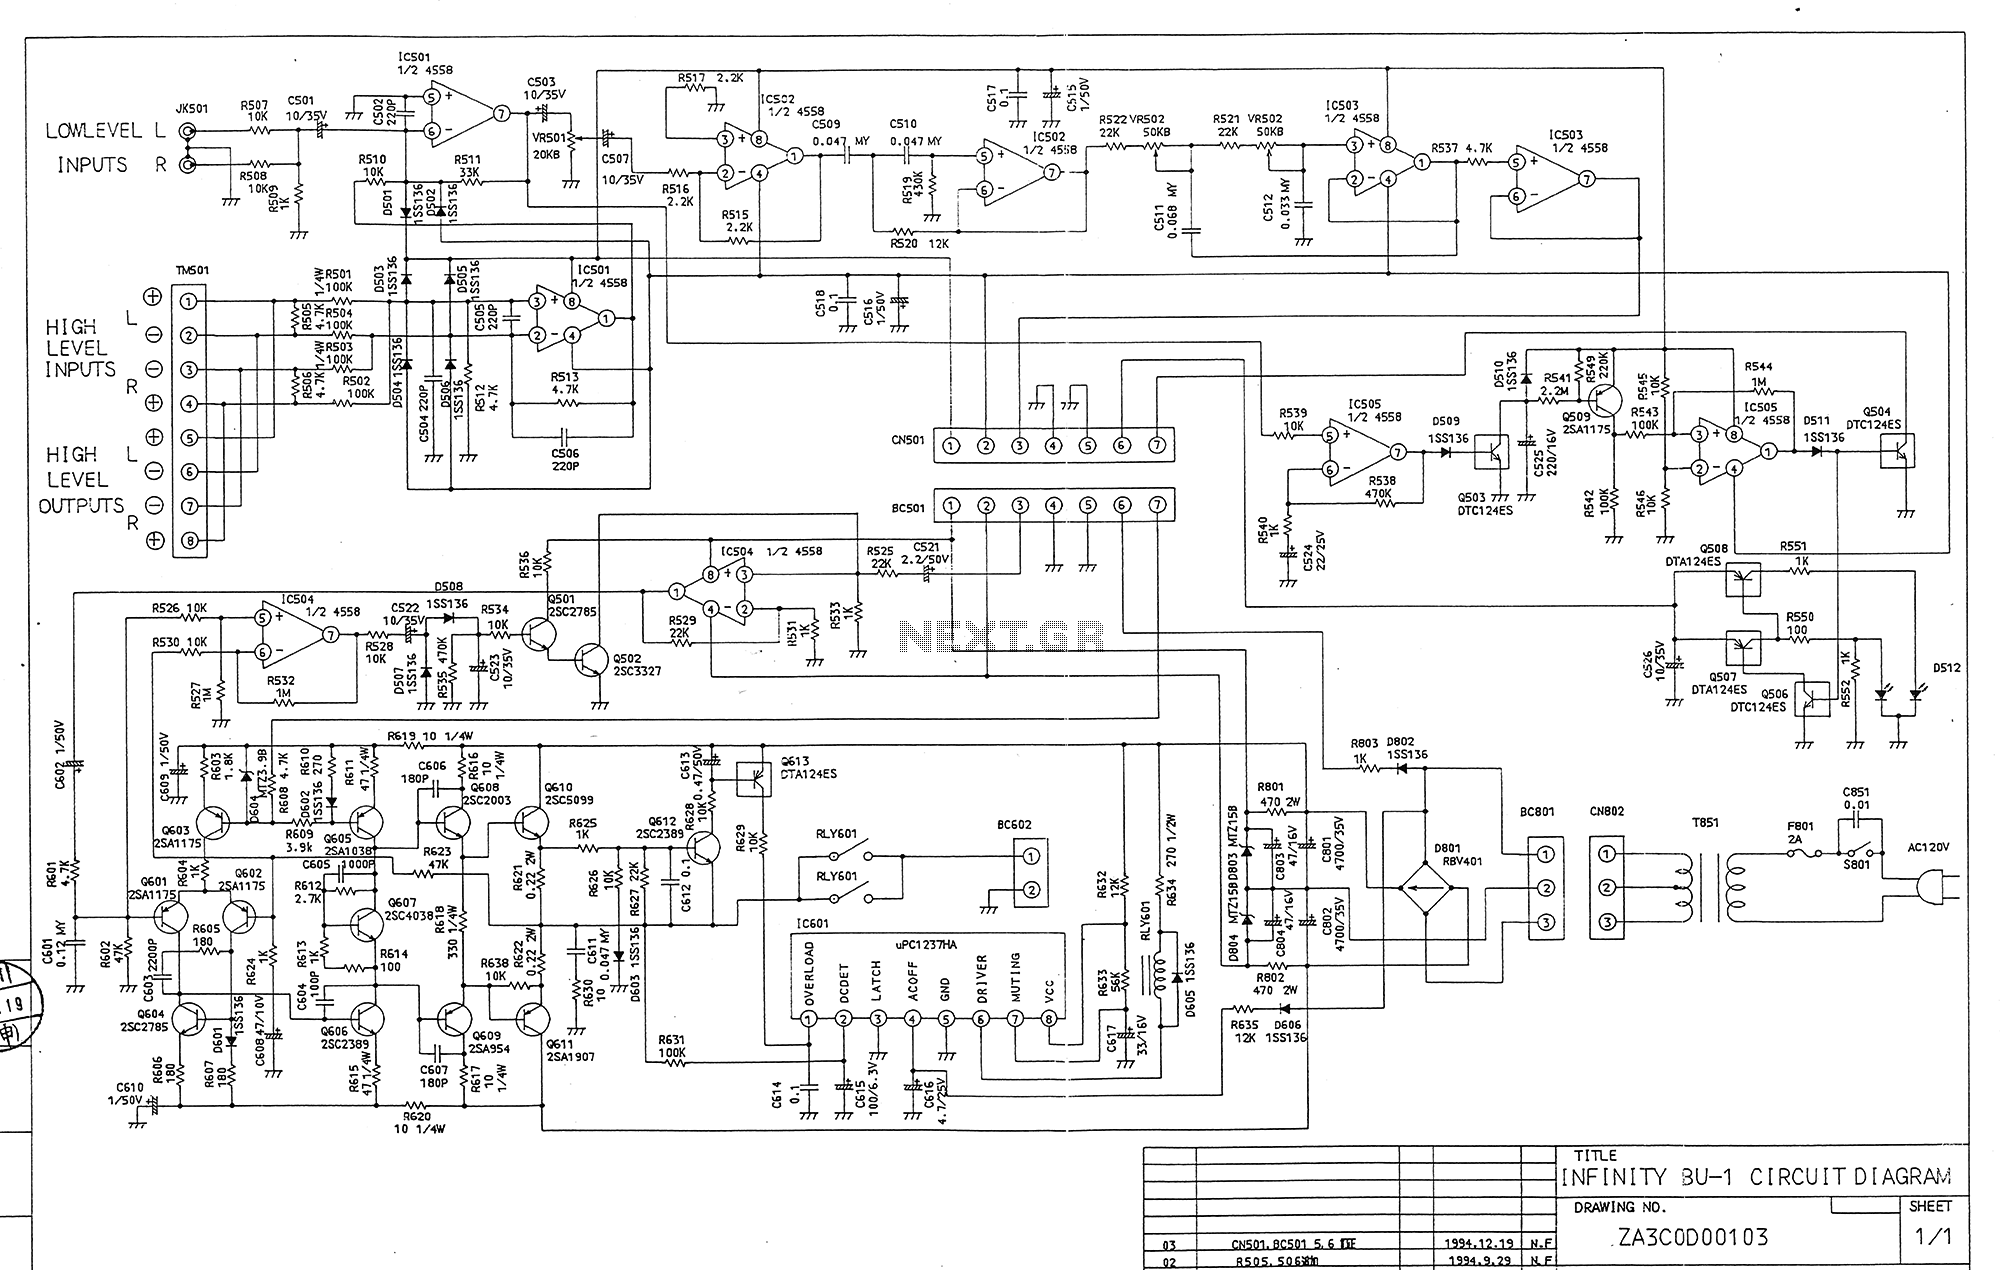 Wien Bridge Notch Filter Circuit Diagram The Circuit